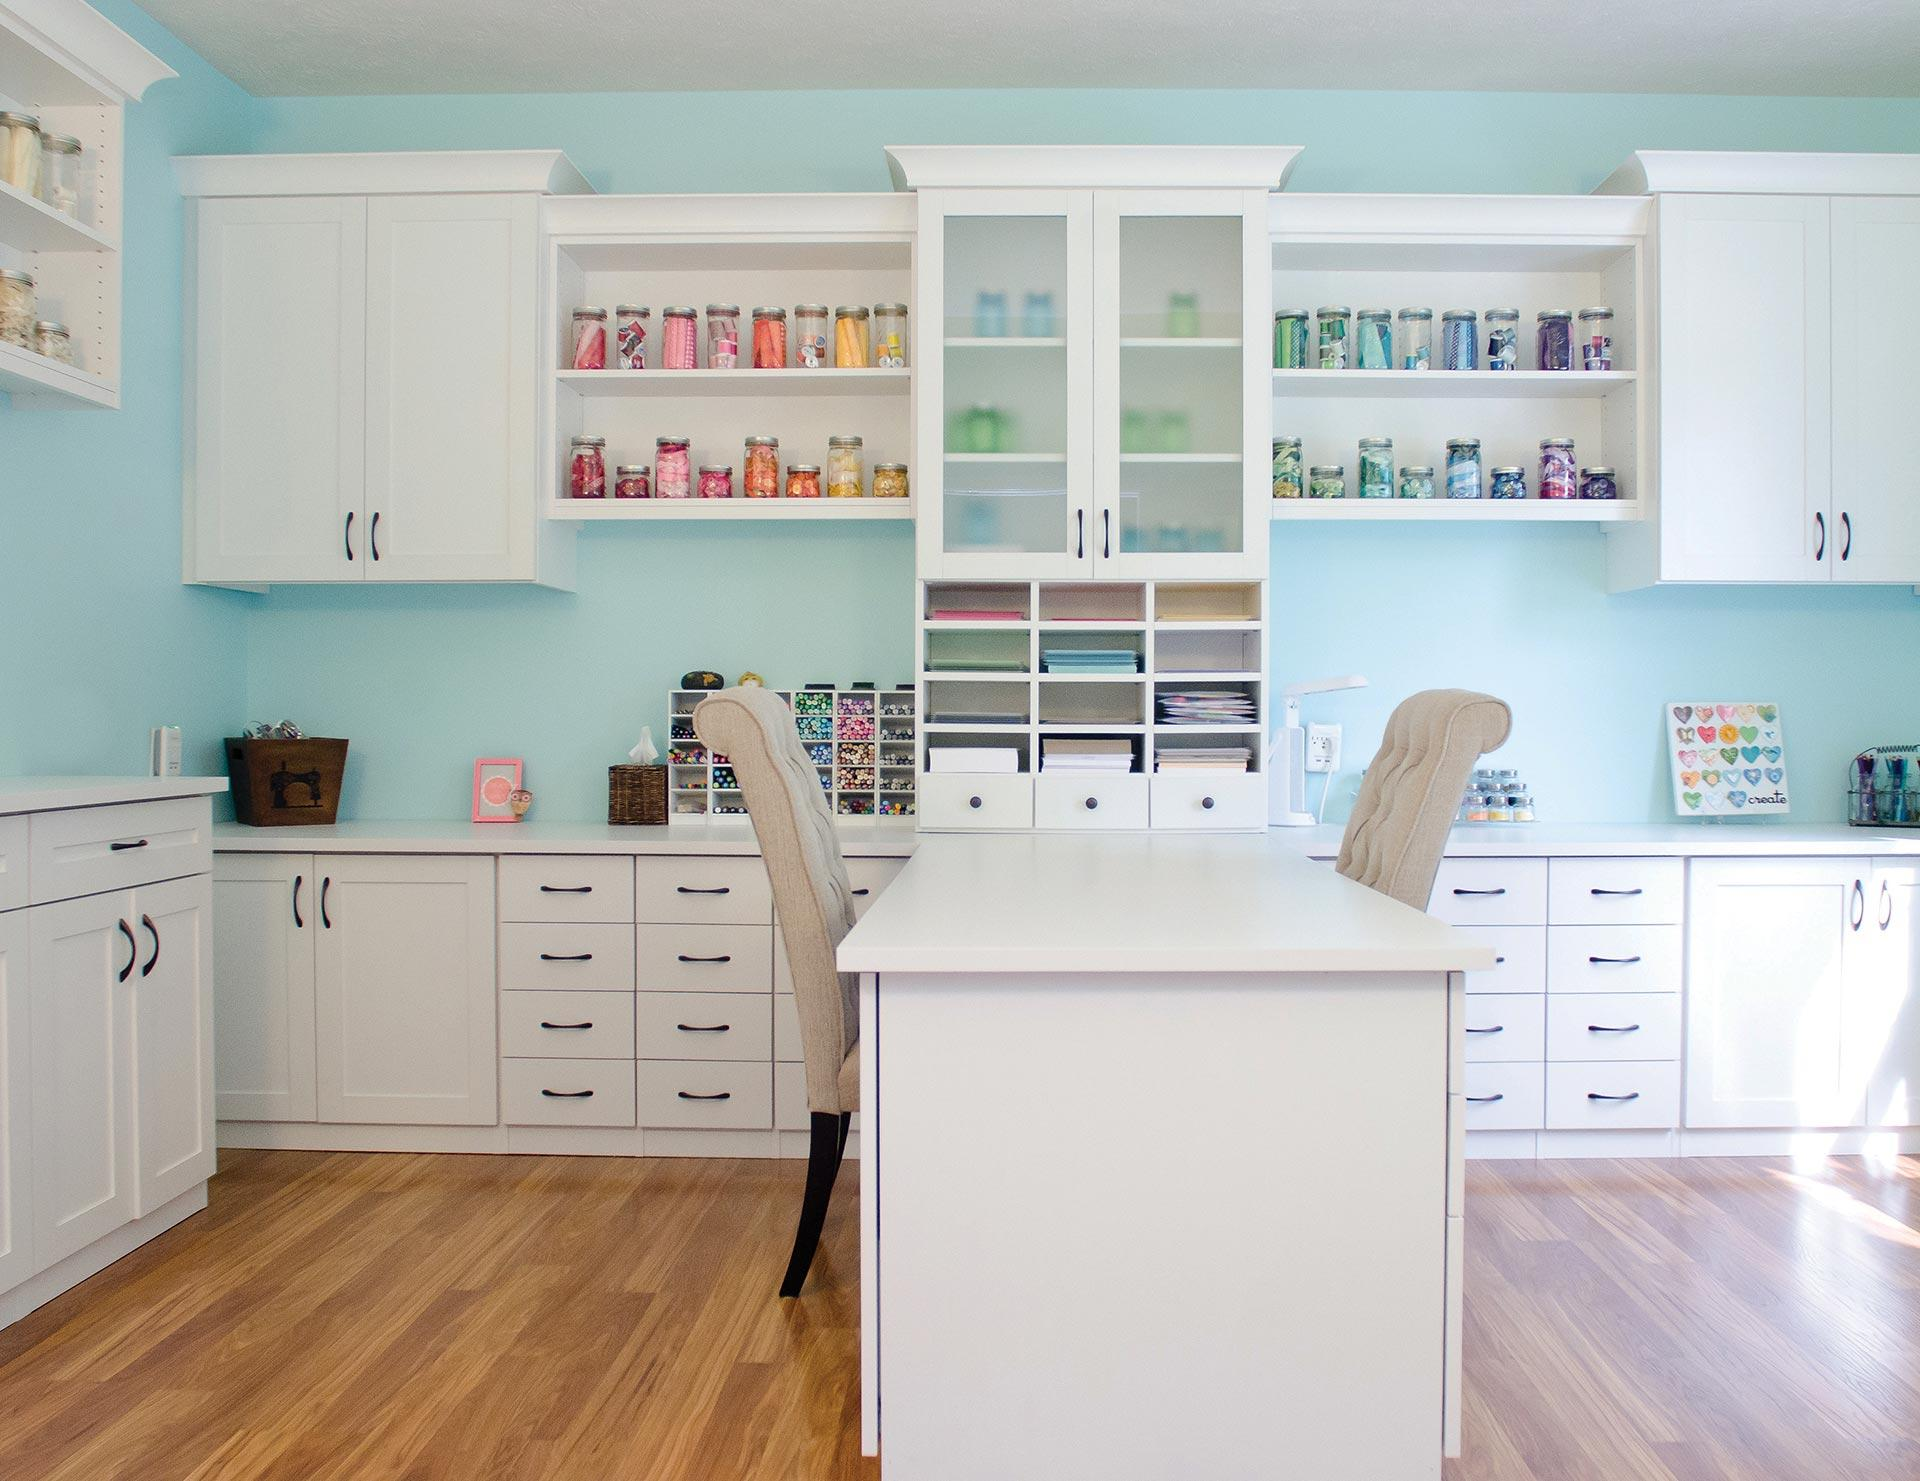 Storage For Craft Room: Craft Room Storage Ideas & Craft Room Organization By